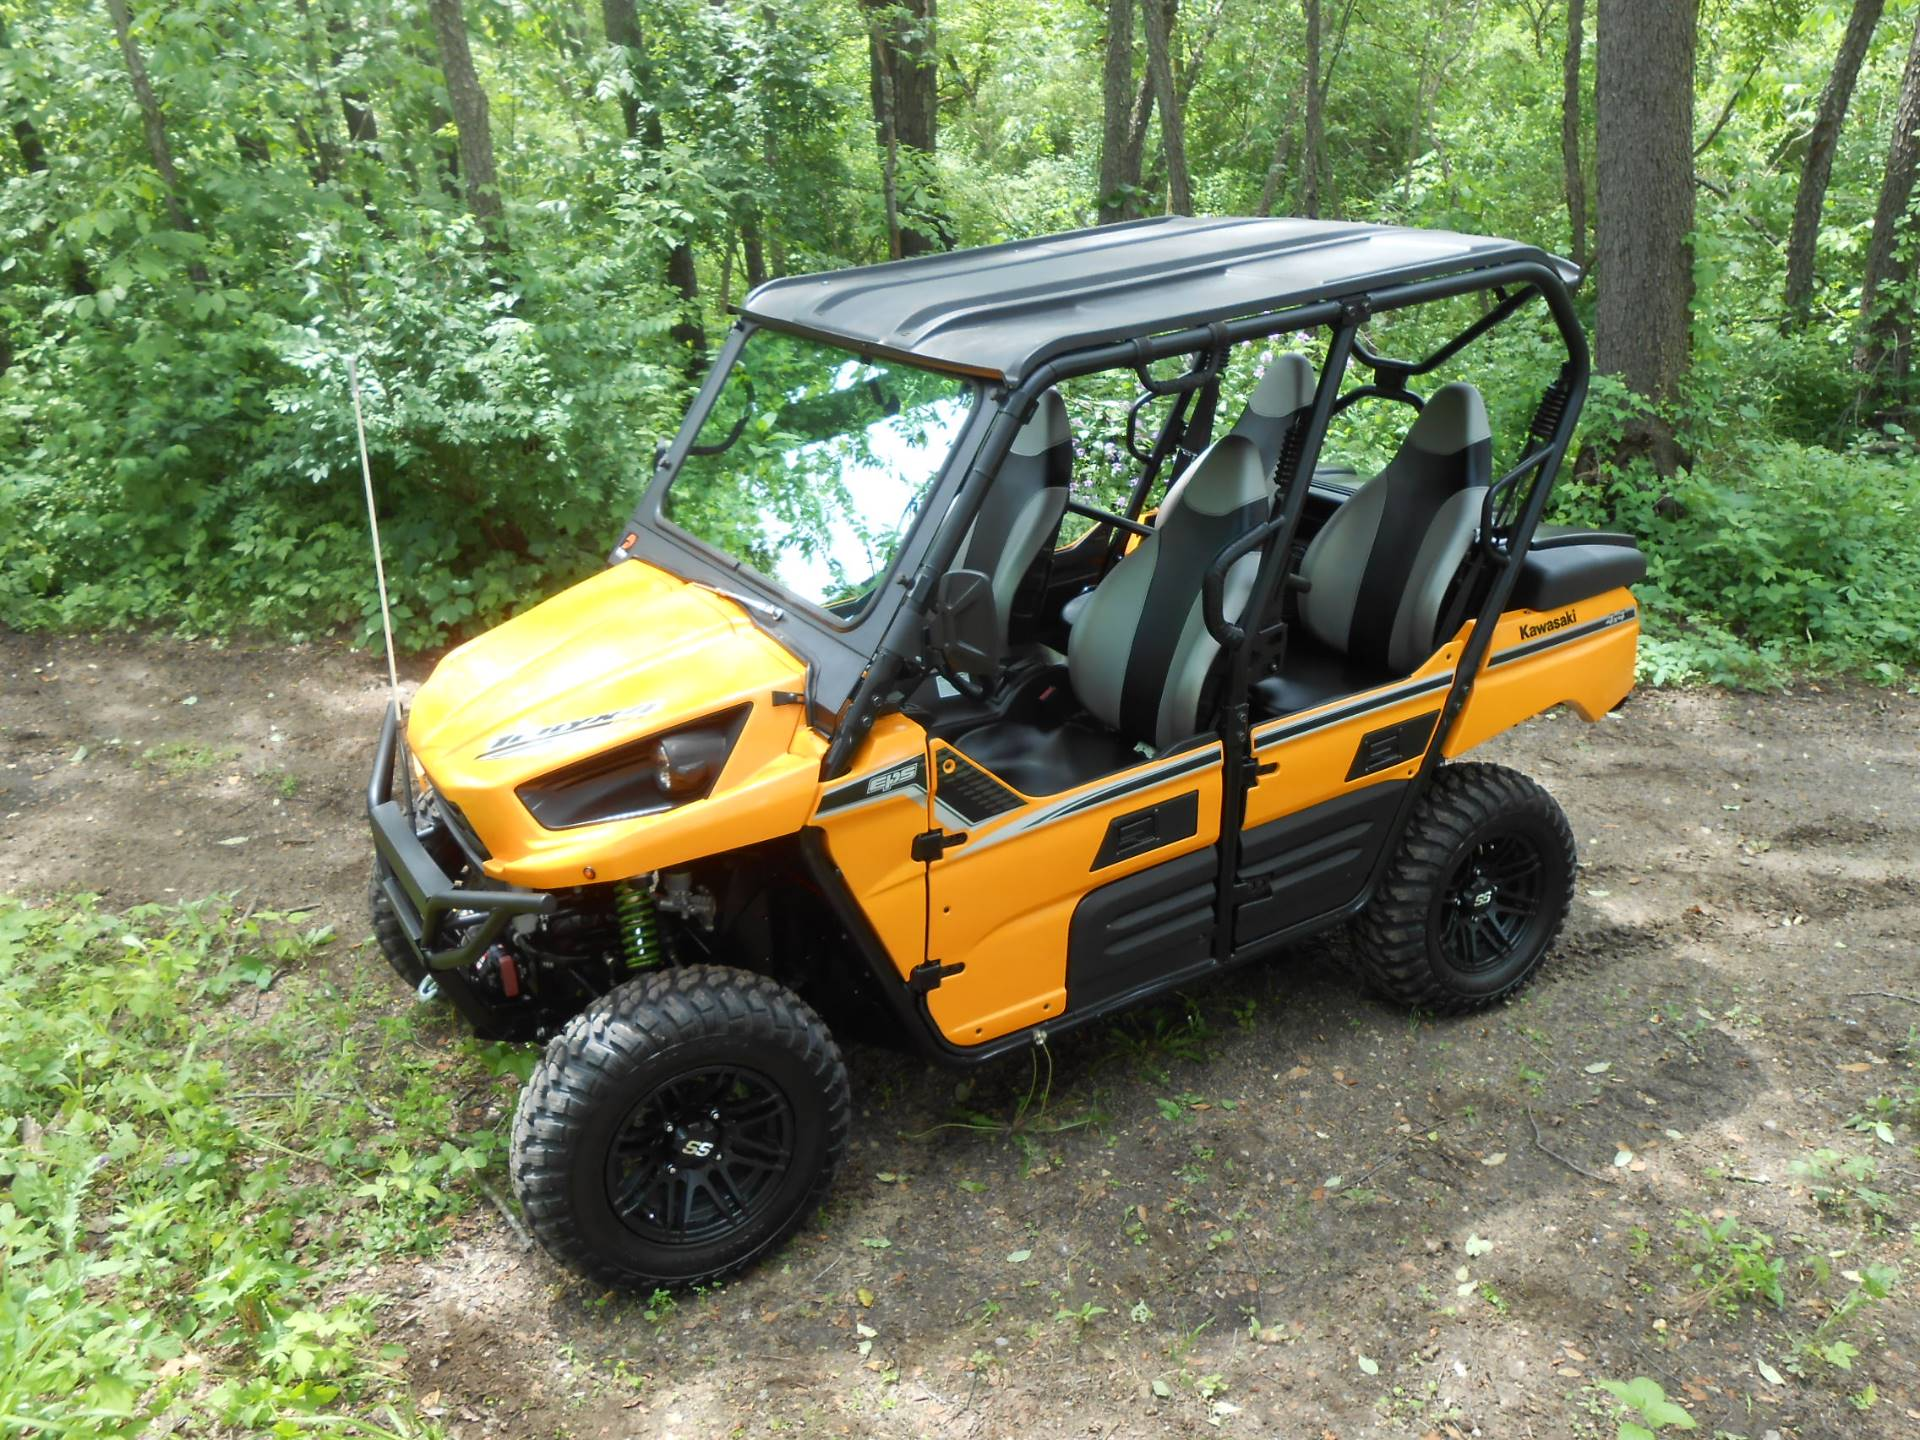 2013 Kawasaki Teryx4™ 750 4x4 EPS LE in Howell, Michigan - Photo 64